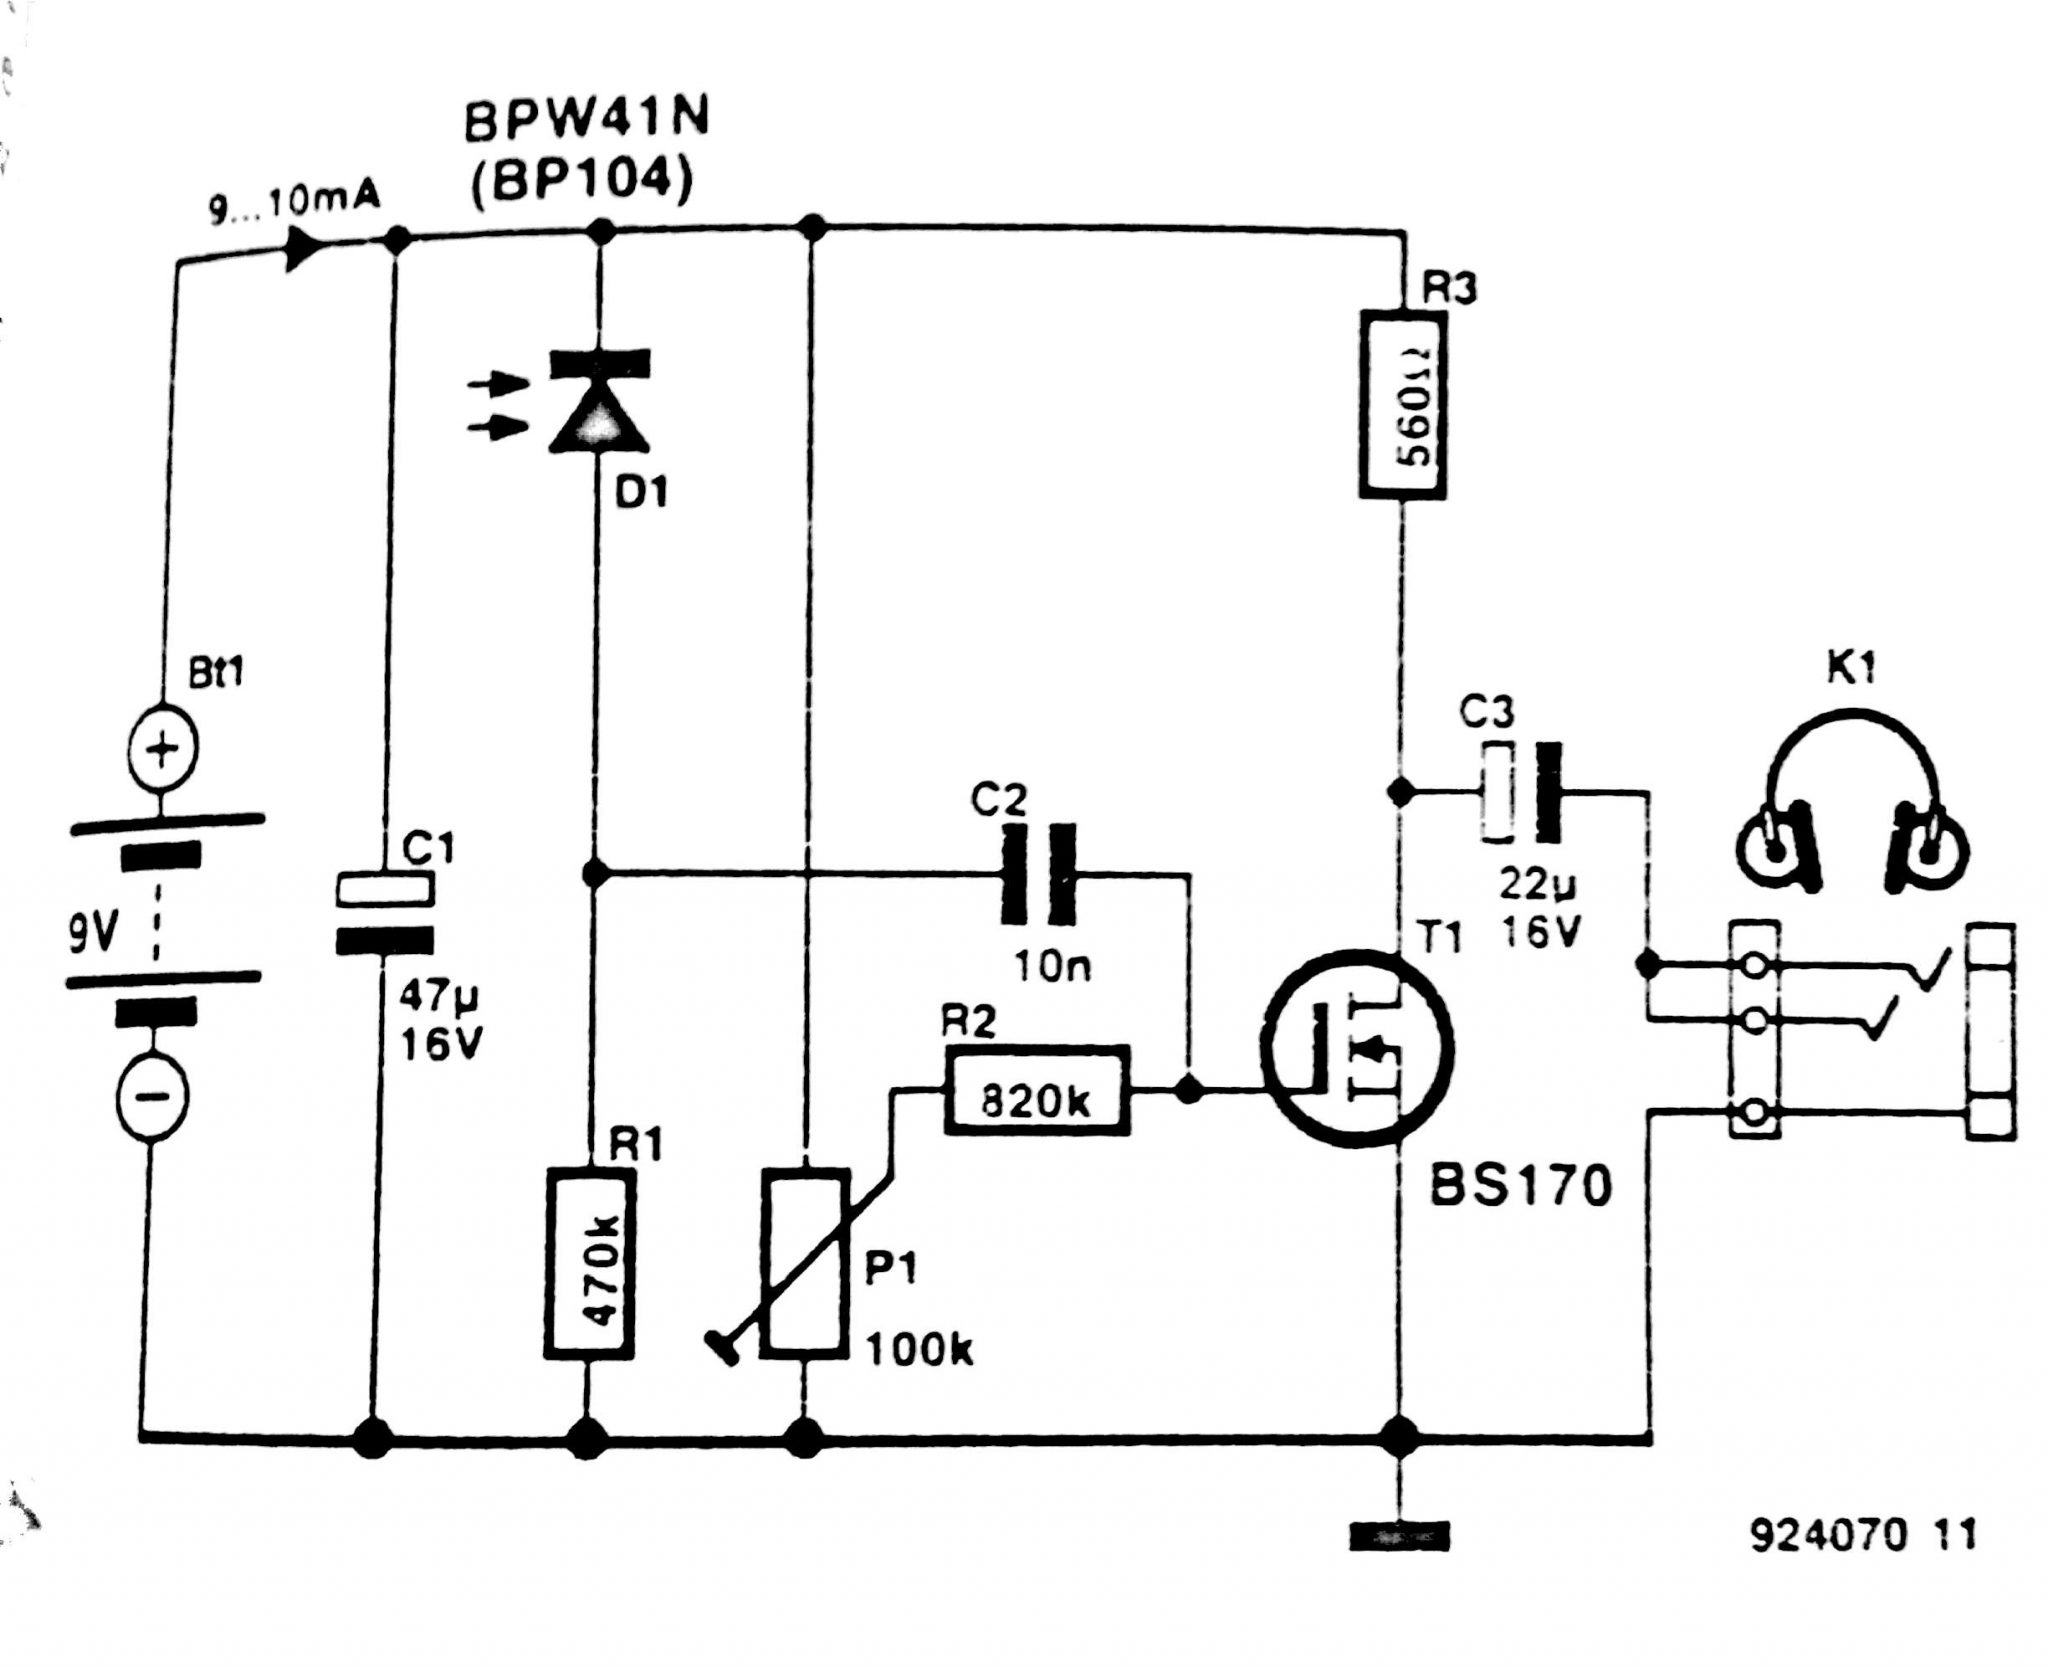 Infrared Headphone Receiver Circuit Diagram